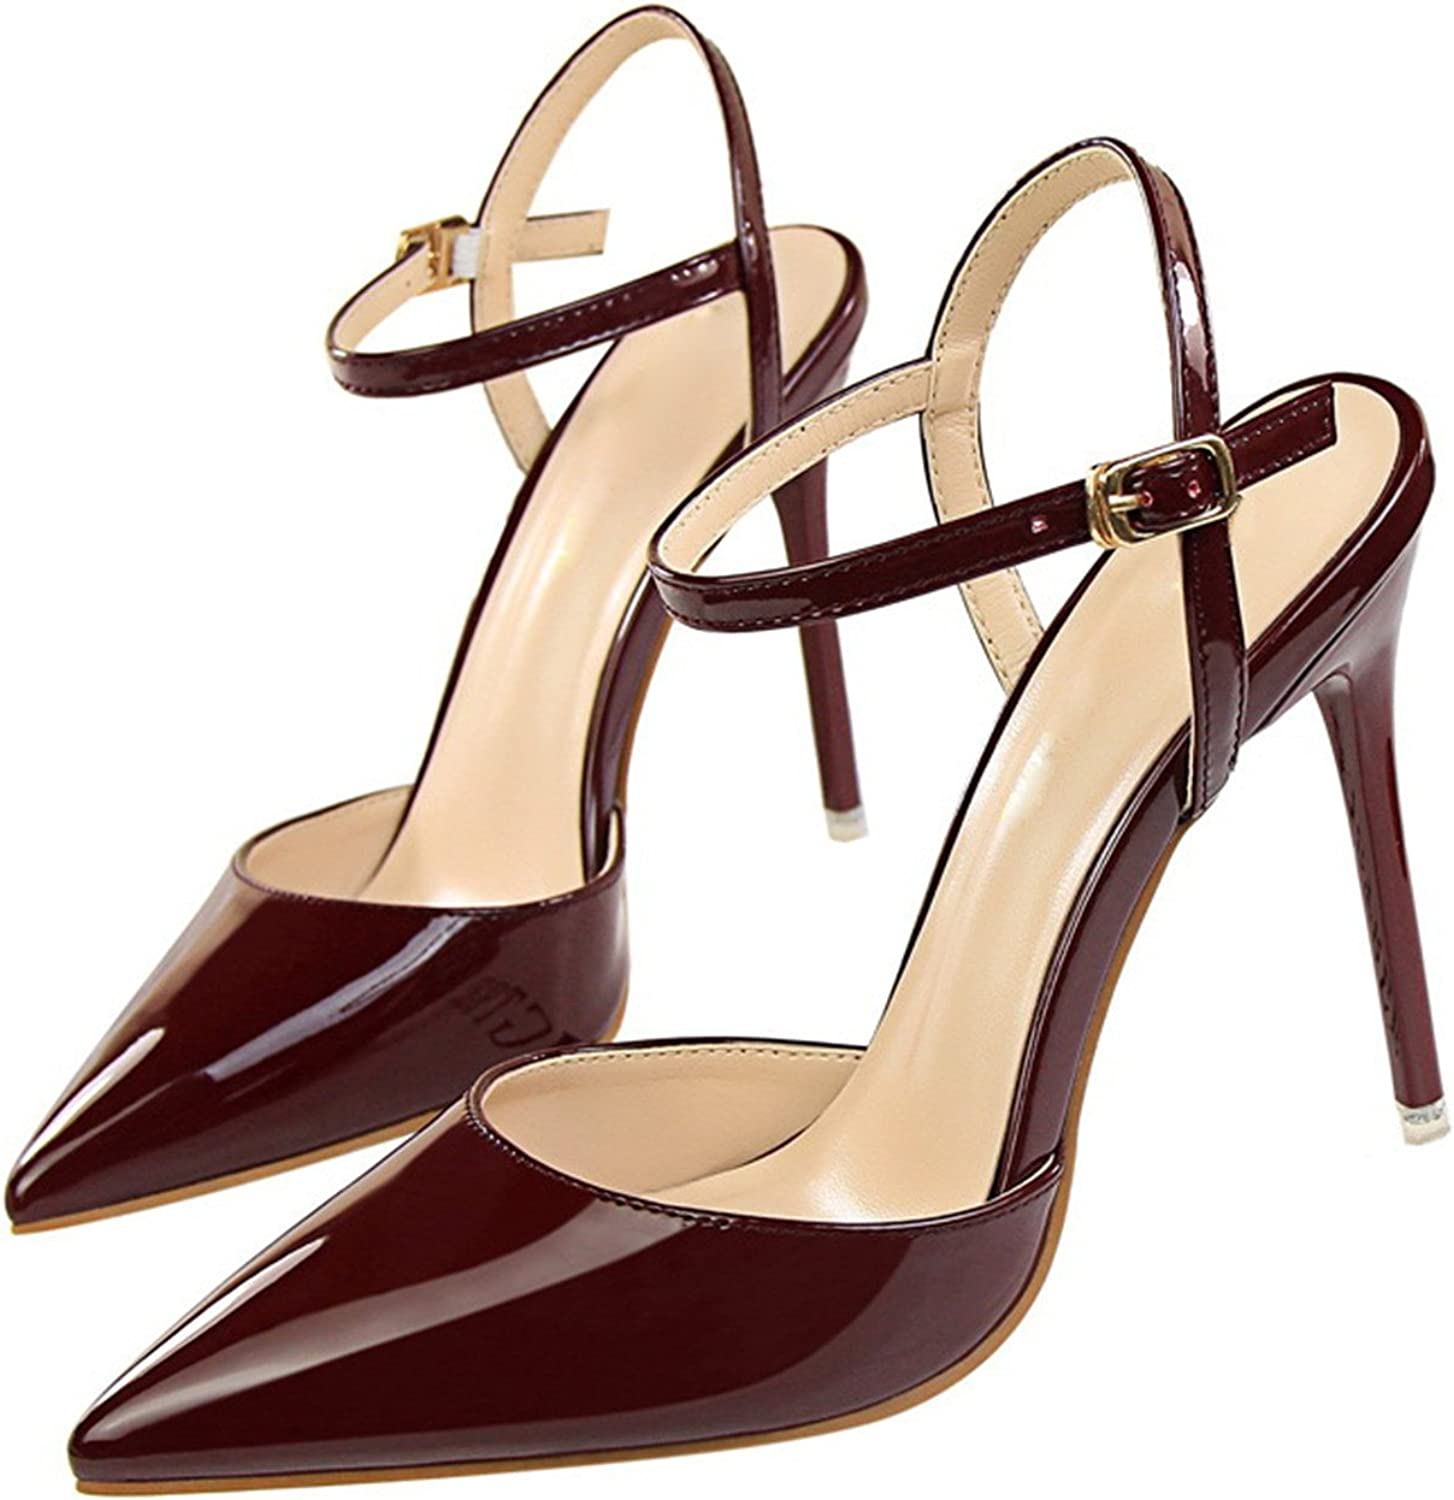 Fashion Ankle Strap shoes Woman Pointed Toe Thin Heels Women's Buckle Slingbacks Pumps high Heels Wine Red 4.5